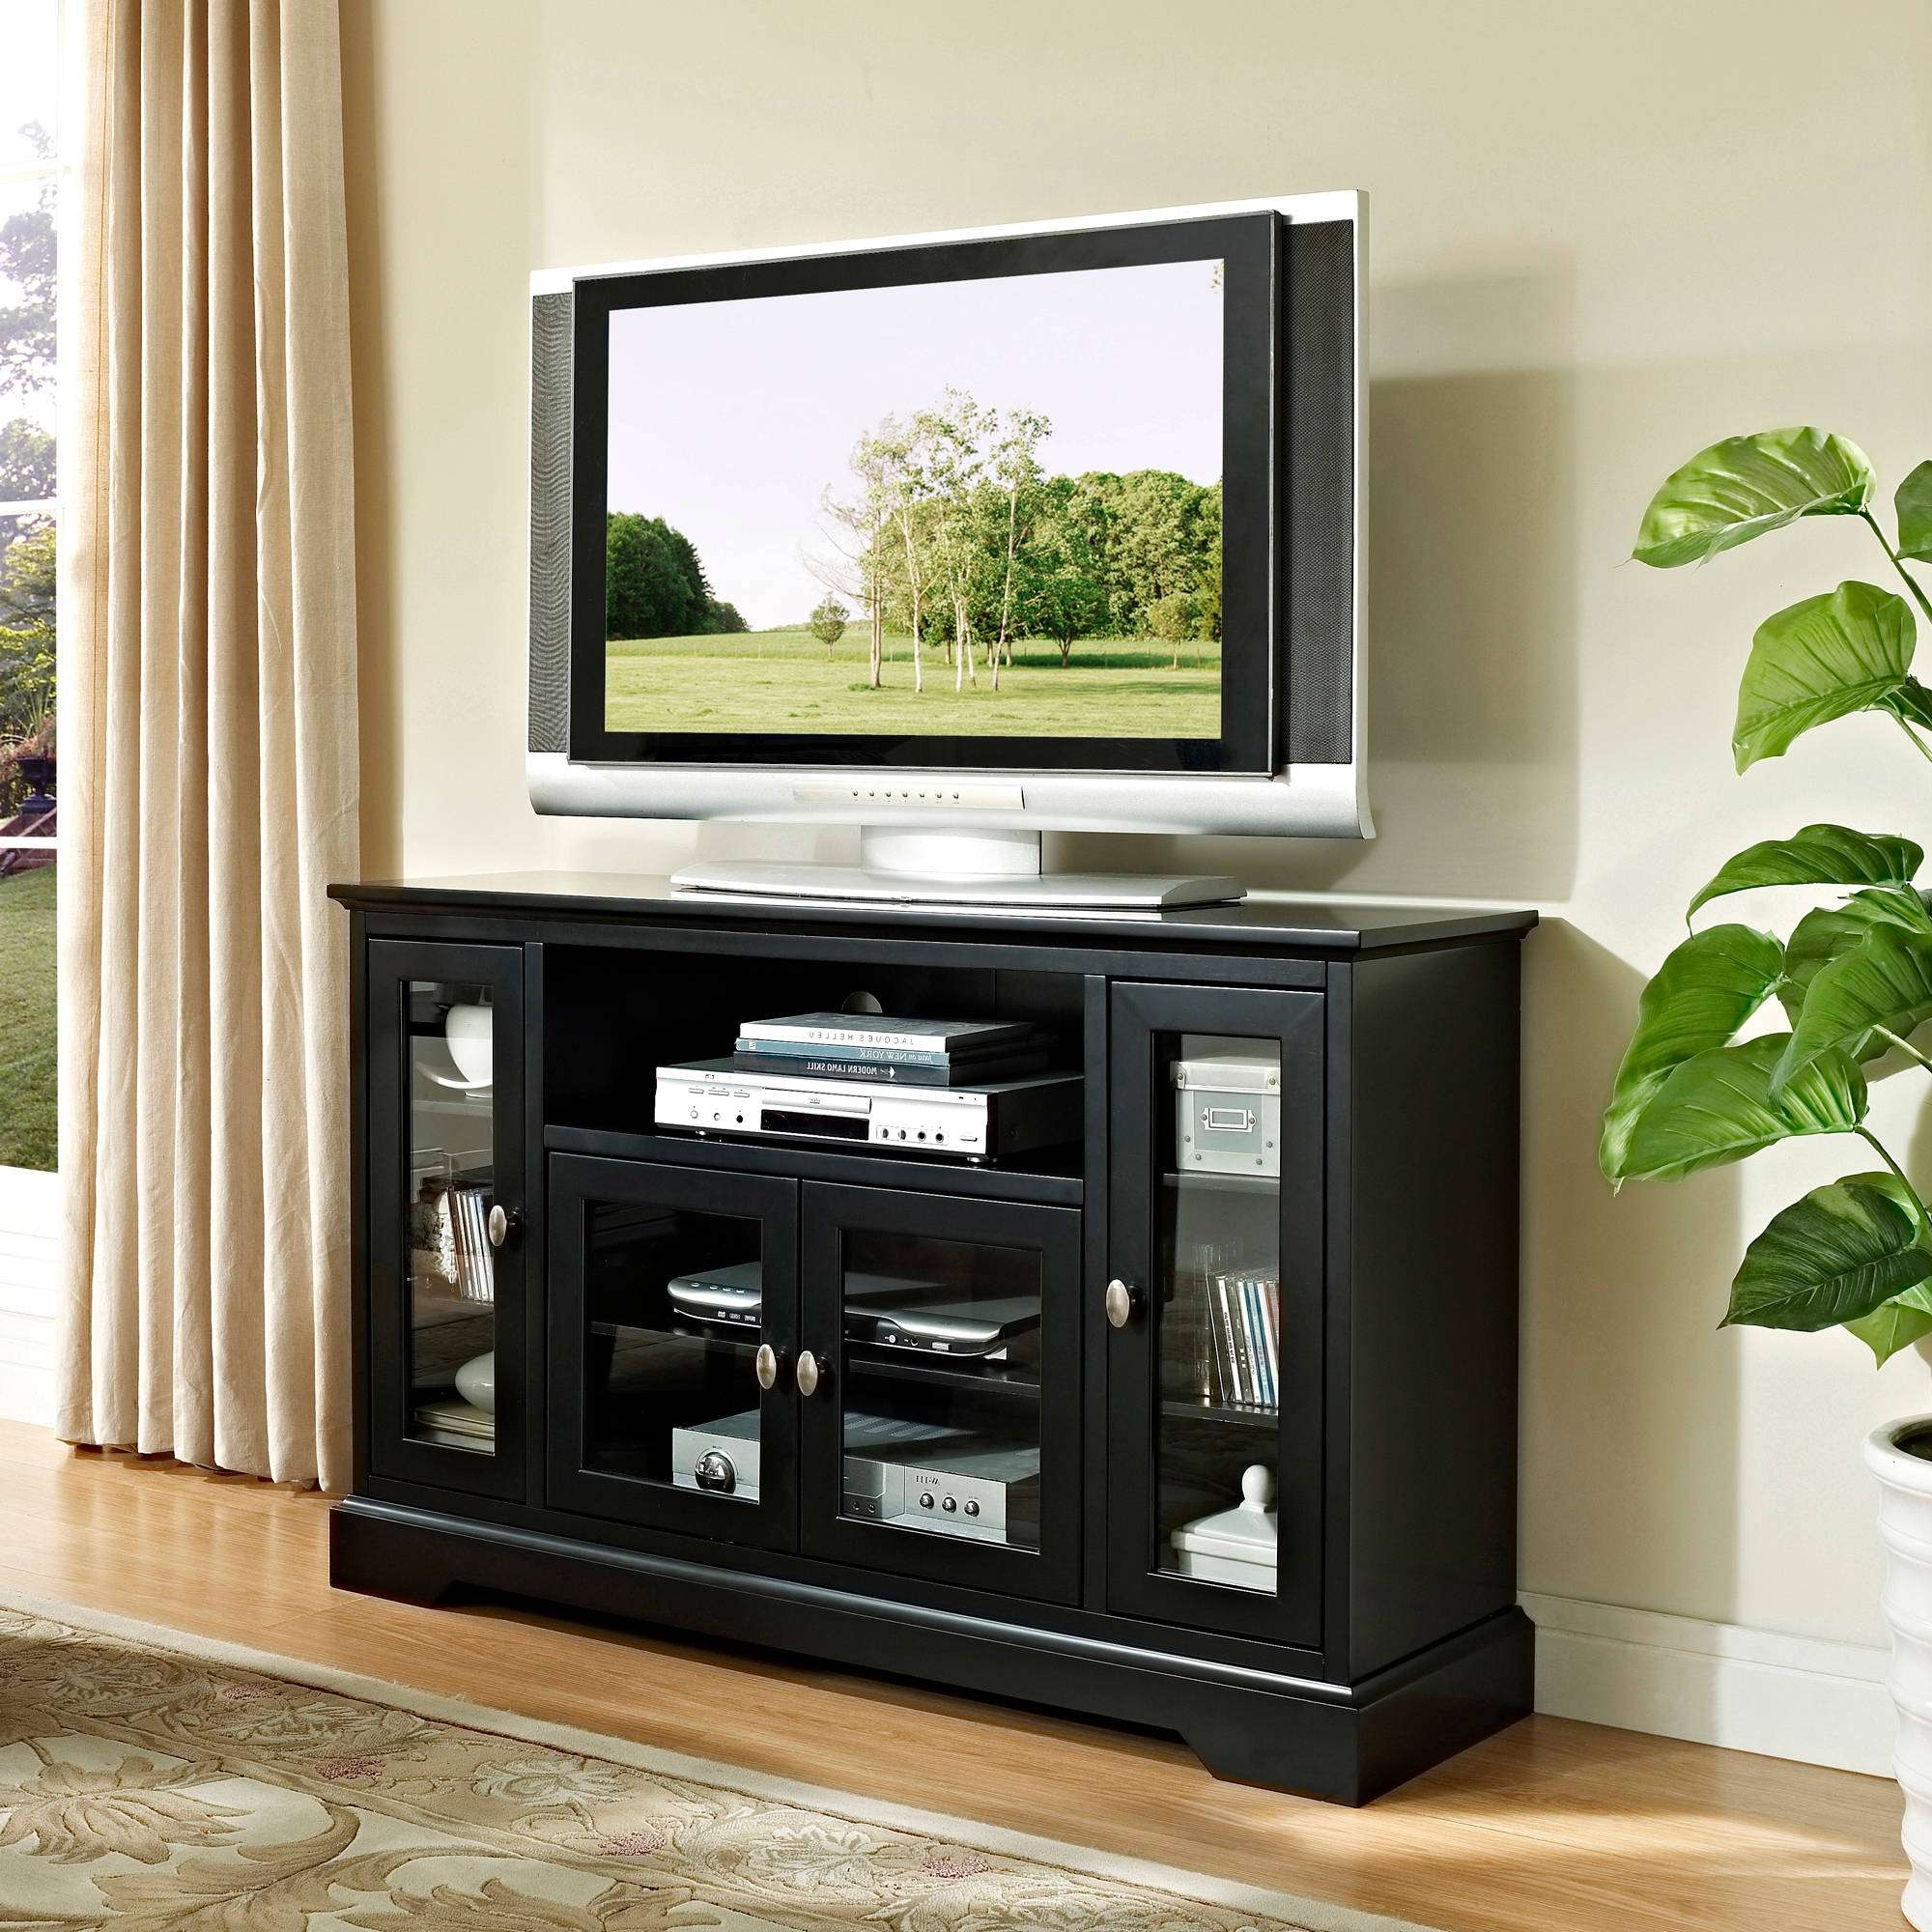 "Walker Edison Highboy Style Tv Stand For Tvs Up To 55"", Muliple Inside Tall Black Tv Cabinets (View 3 of 20)"